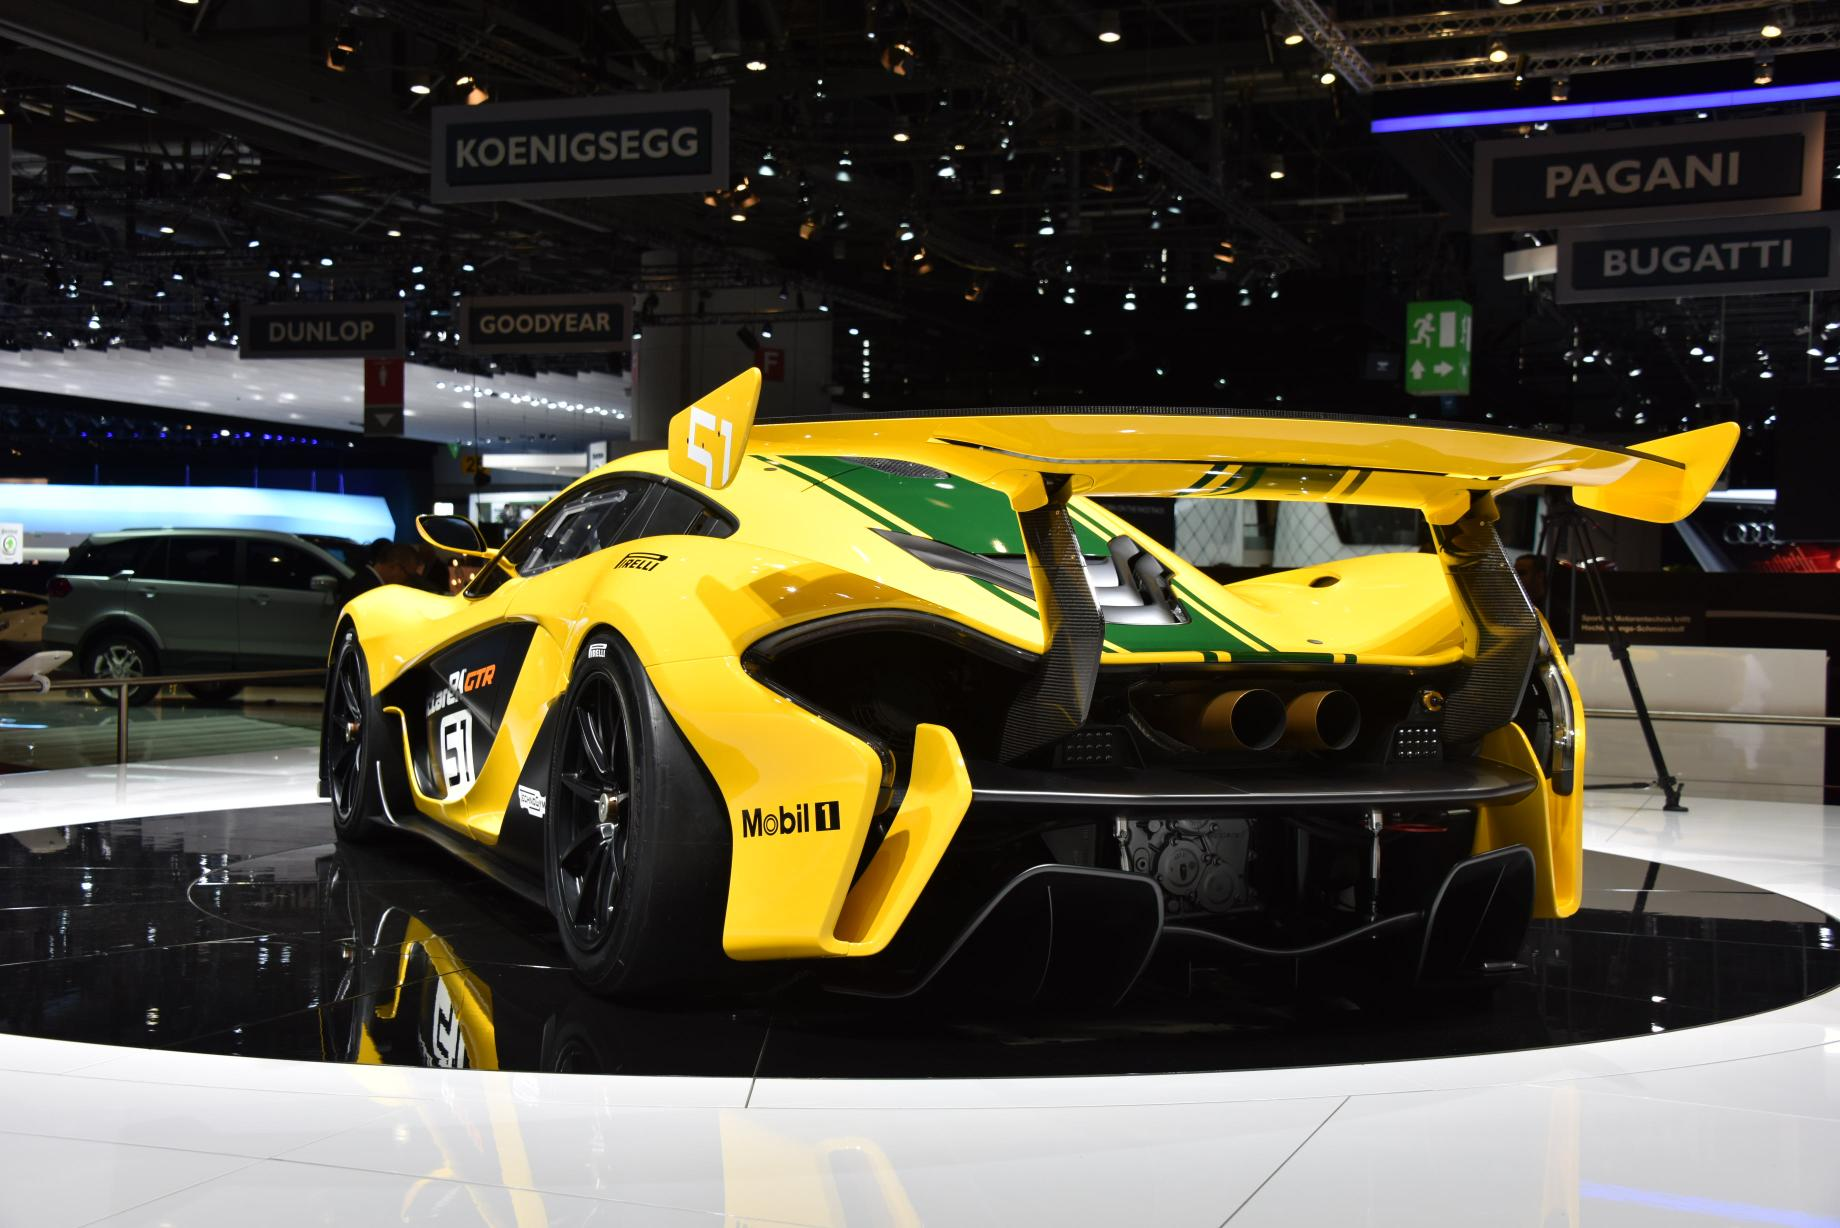 Full Hd Motorcycle Wallpaper Mclaren P1 Gtr Race Car Debuts At The Geneva Motor Show